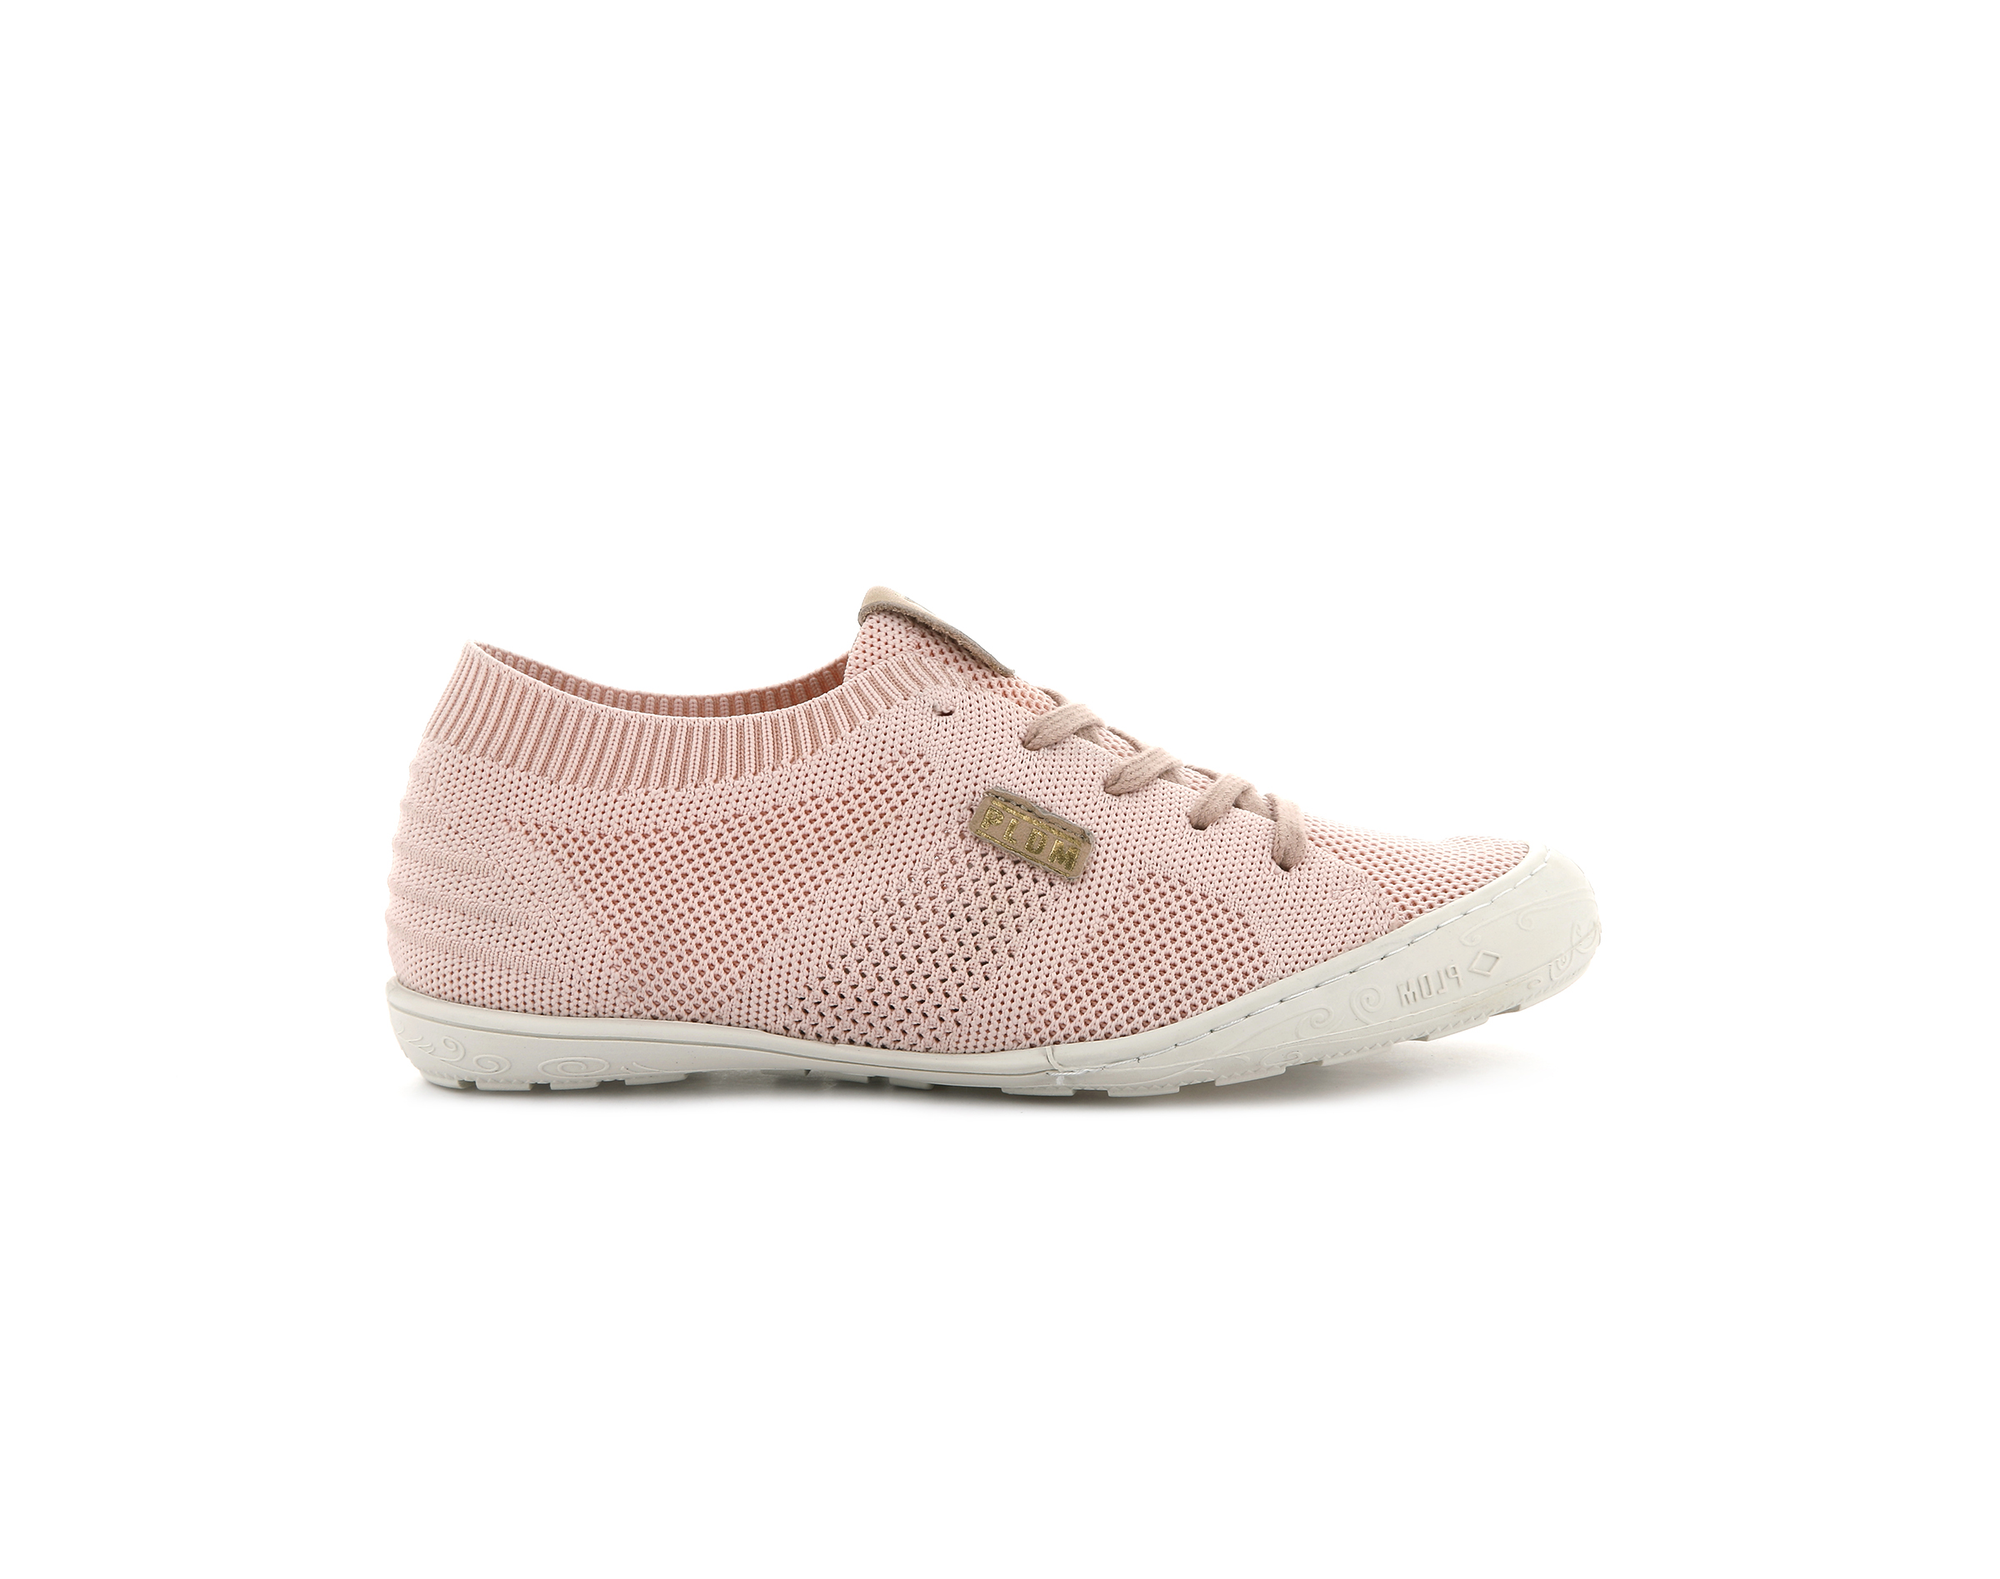 76513_L57 | Basket Femme GLORIEUSE | ROSE DUST